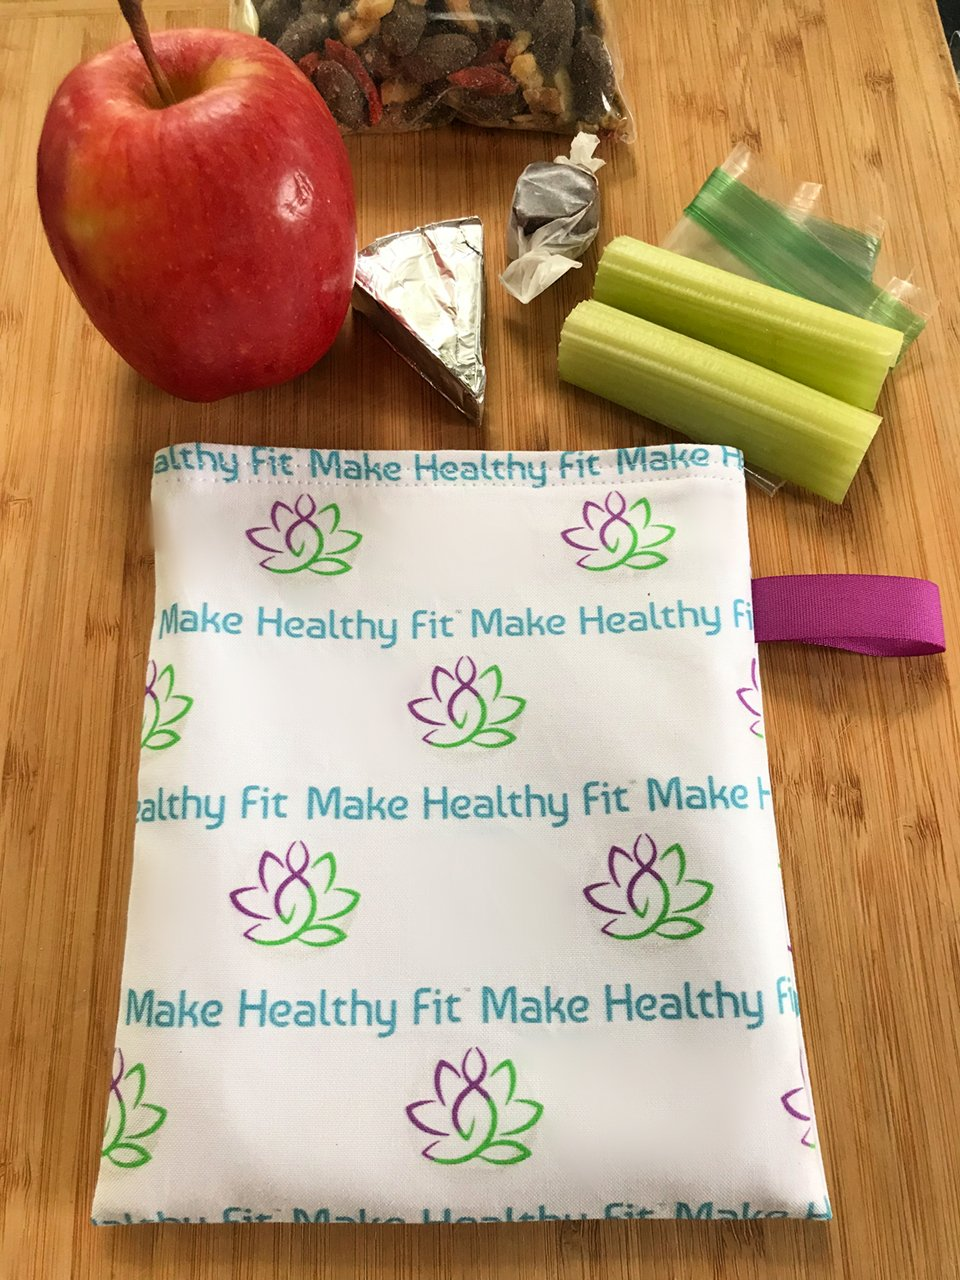 Snack bag laid out on table with sample snacks.